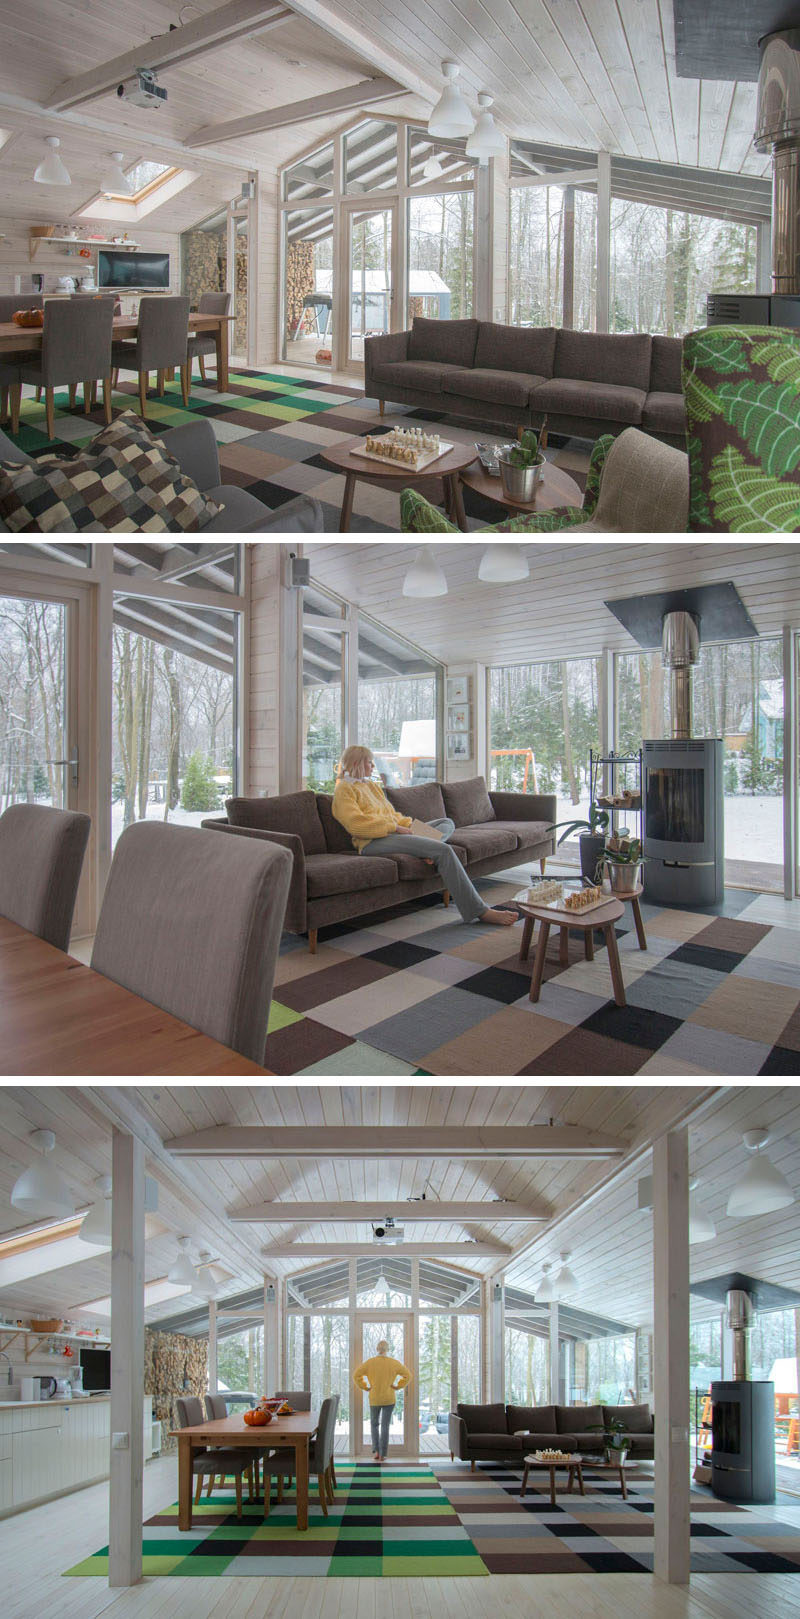 Stepping into this rustic modern house, you can see that the interior is covered in solid pine wood that's then been painted white. The main area is an open floor plan and rugs in different colors help to define the living and dining areas.